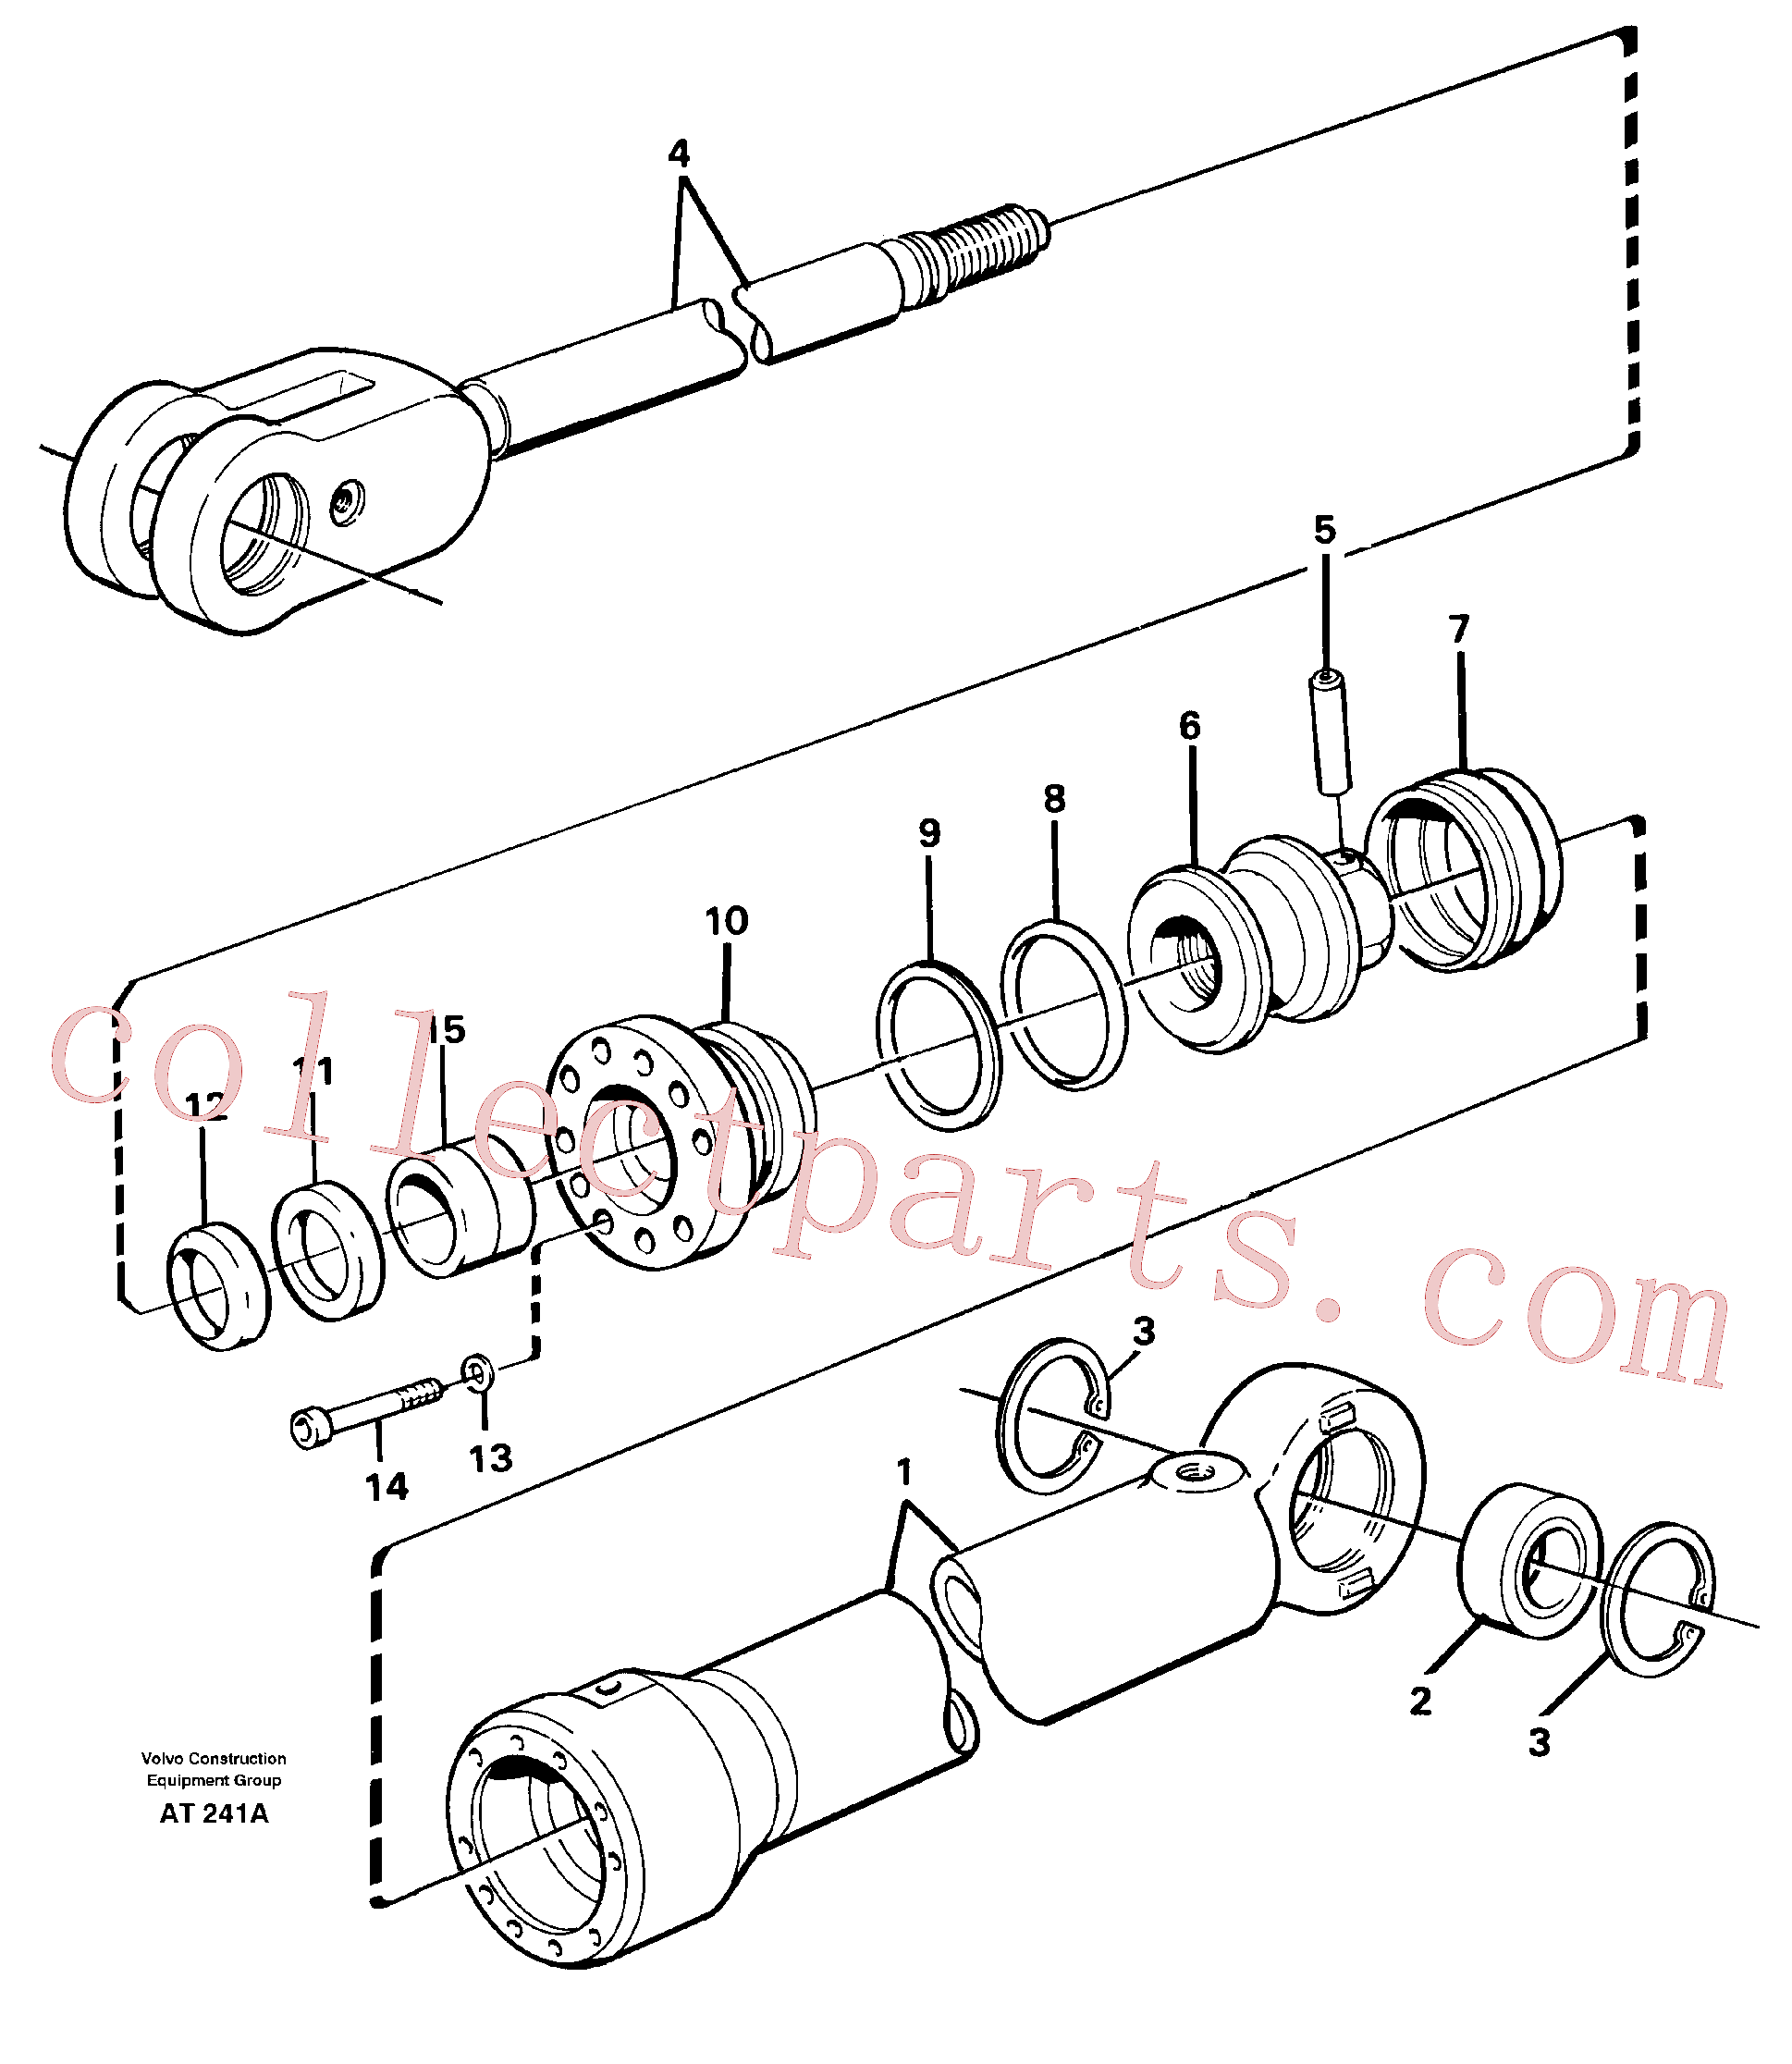 VOE11704196 for Volvo Hydraulic cylinder(AT241A assembly)